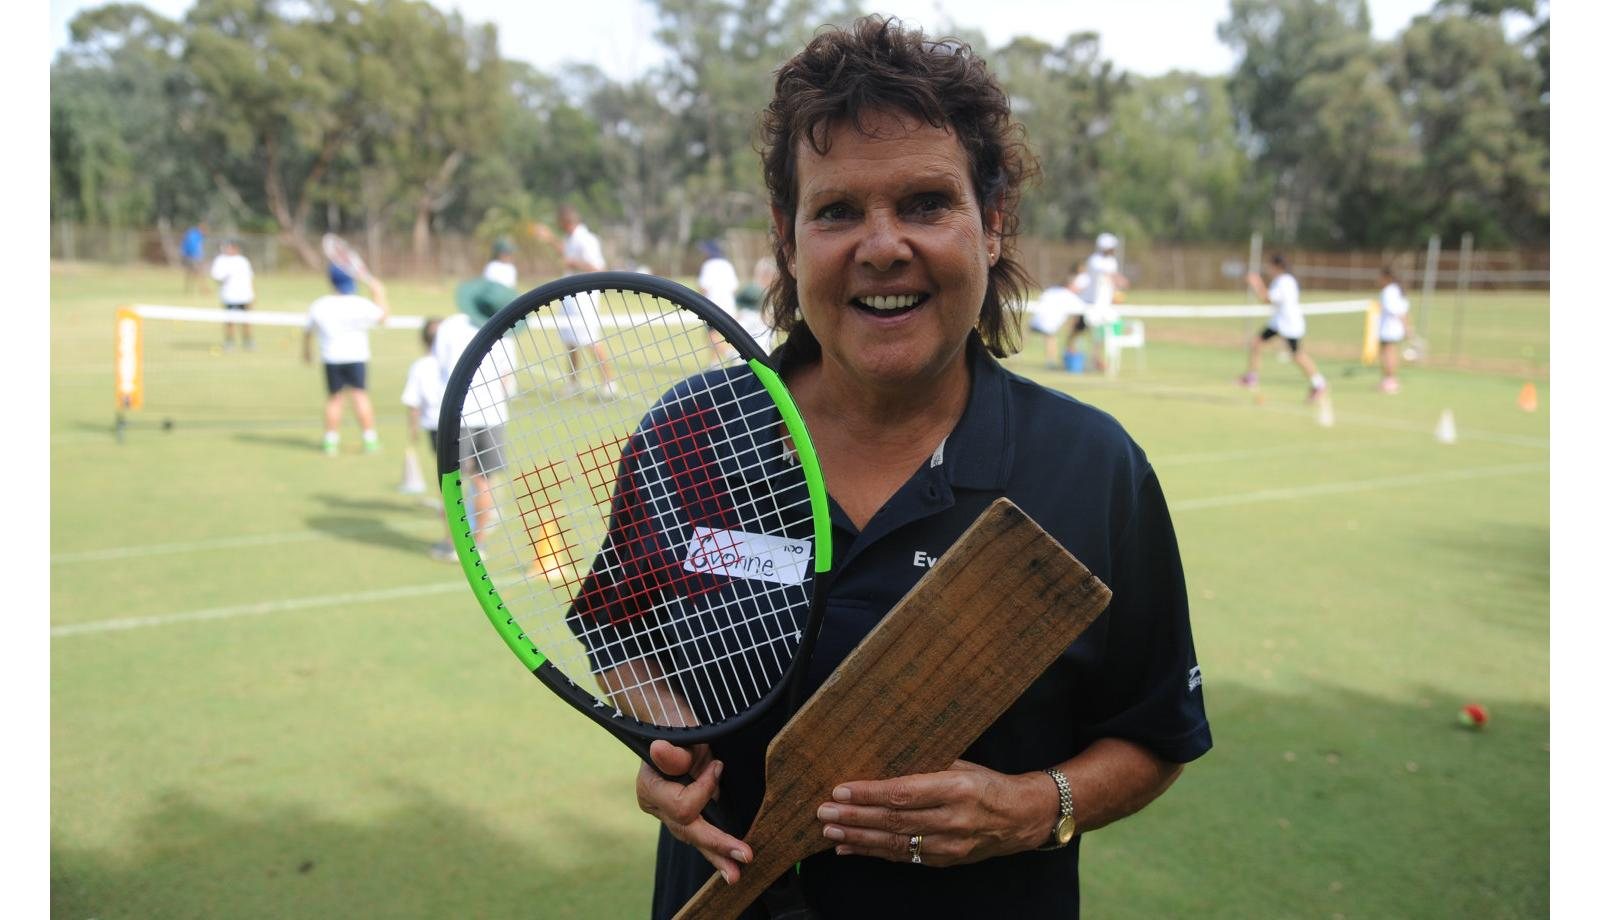 Tennis great s life serves as inspiration to new generation